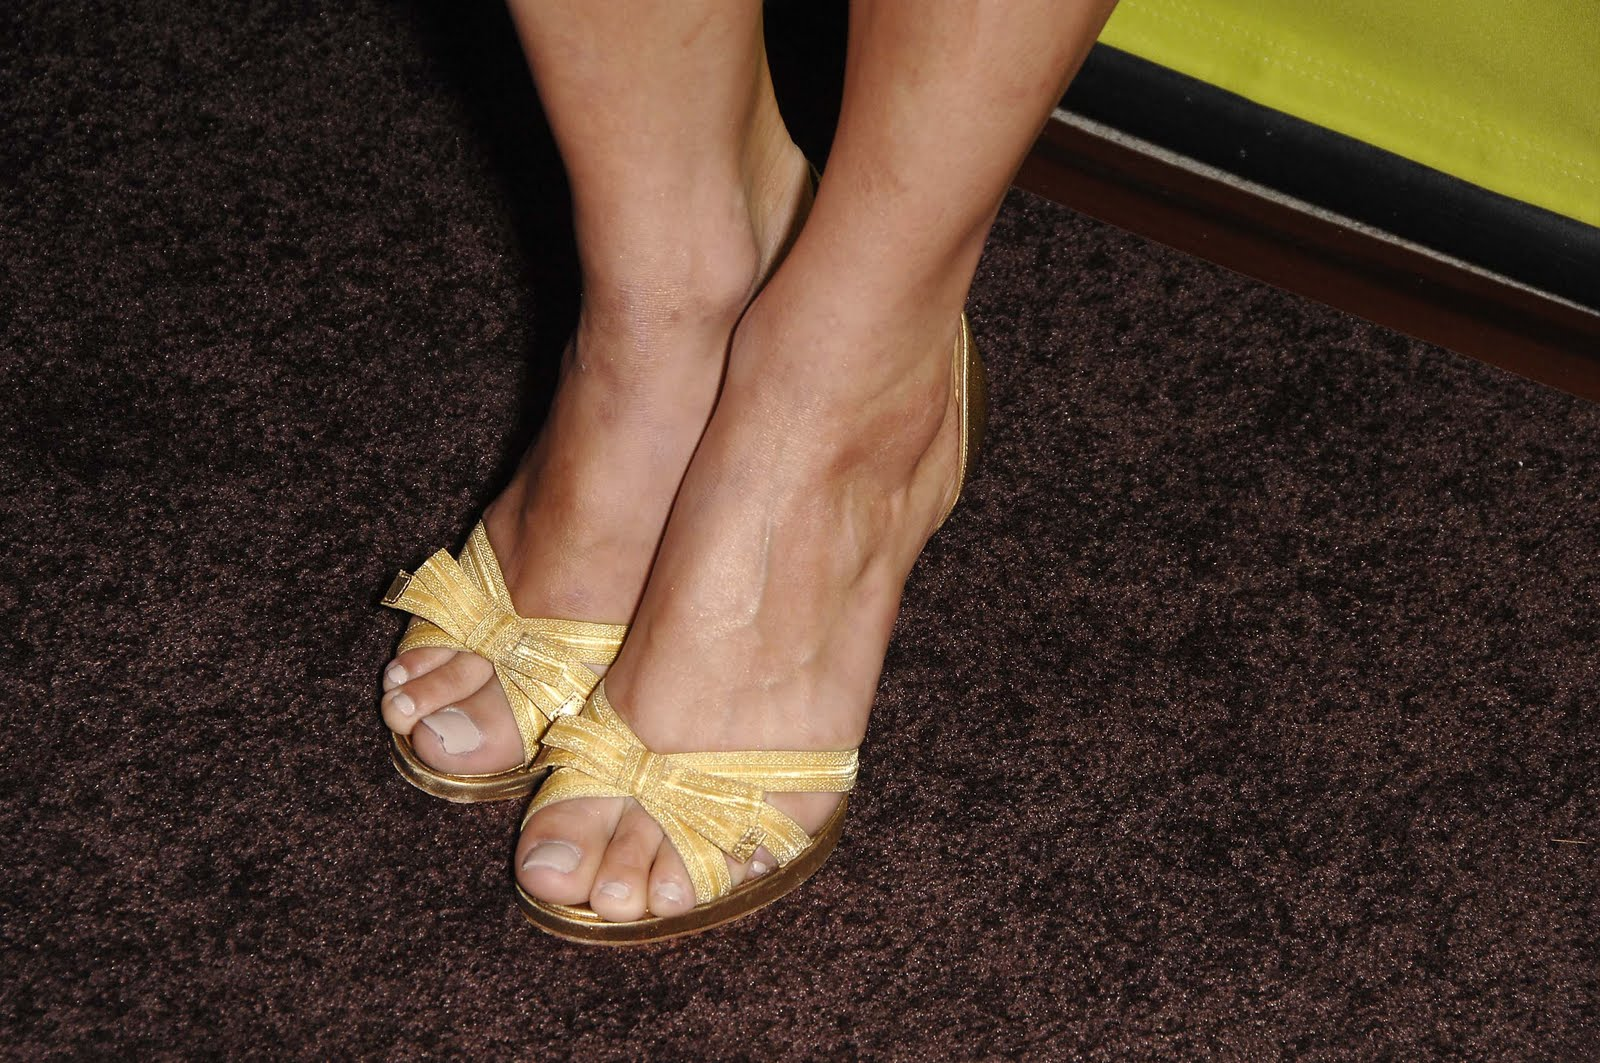 Celebs foot fetish